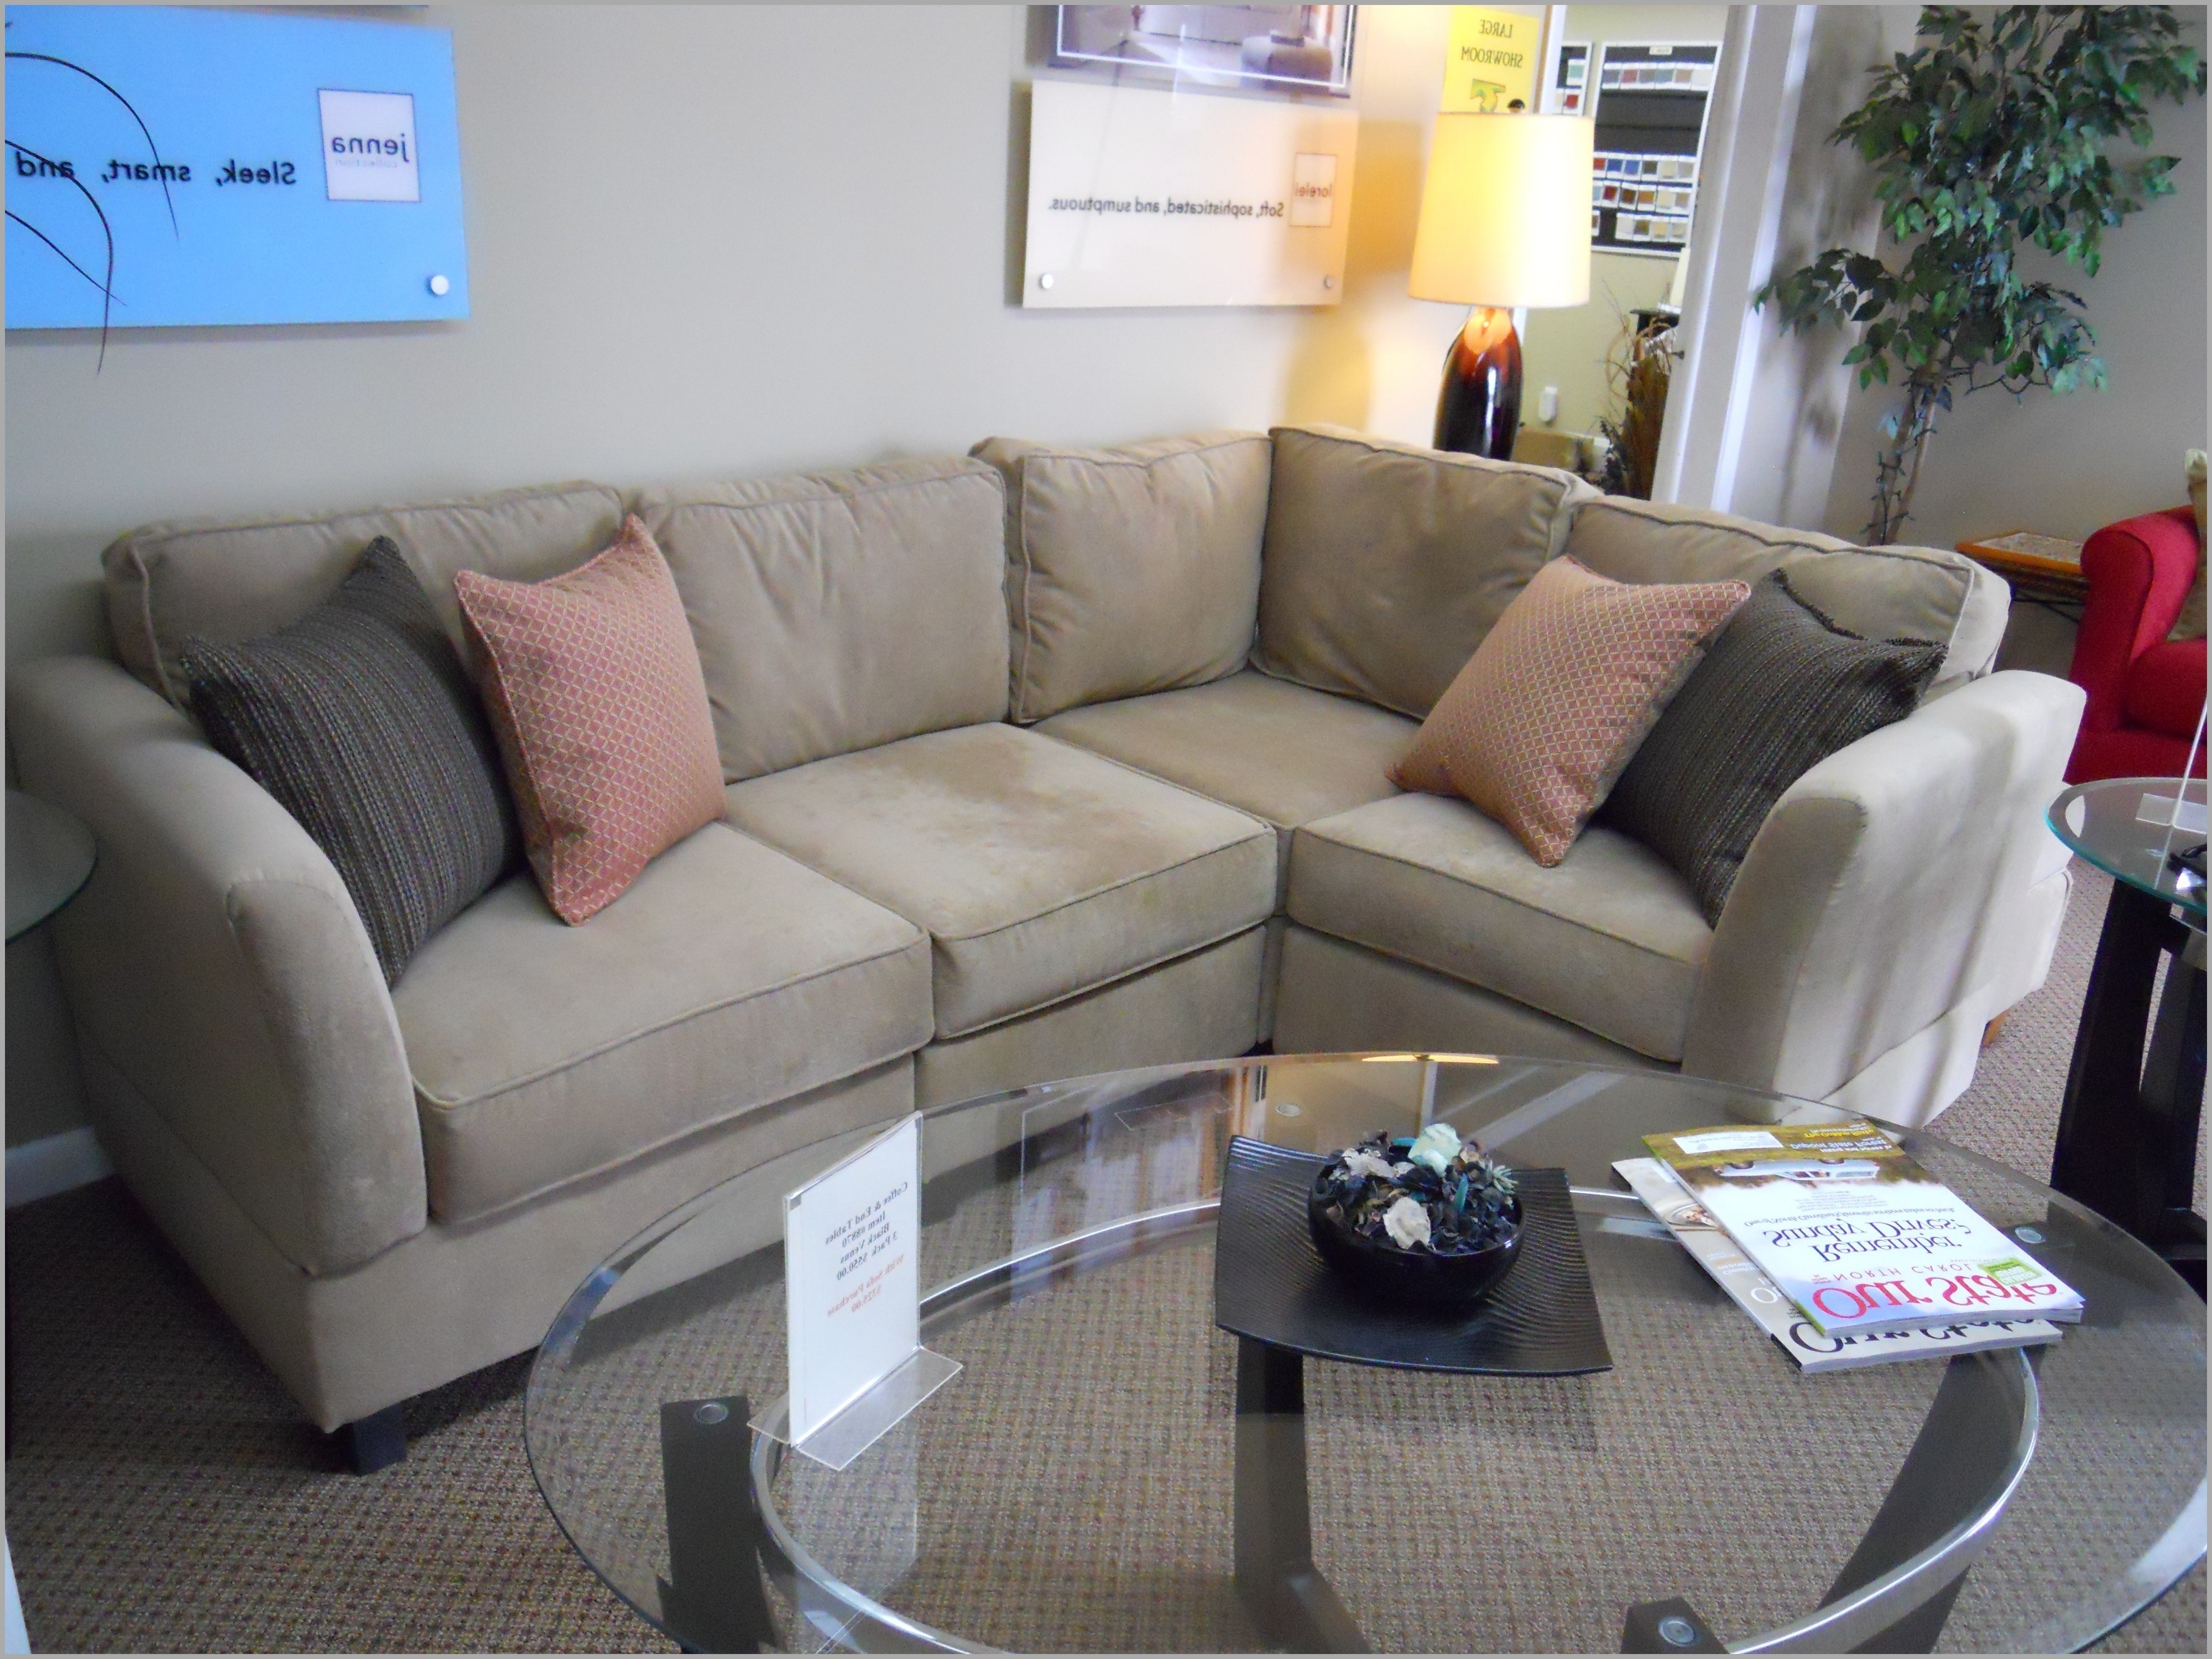 Mini Sectional Sofas With Regard To Most Current Corner Loveseat Small Luxury Leather Sectional Couches For Small (View 4 of 20)